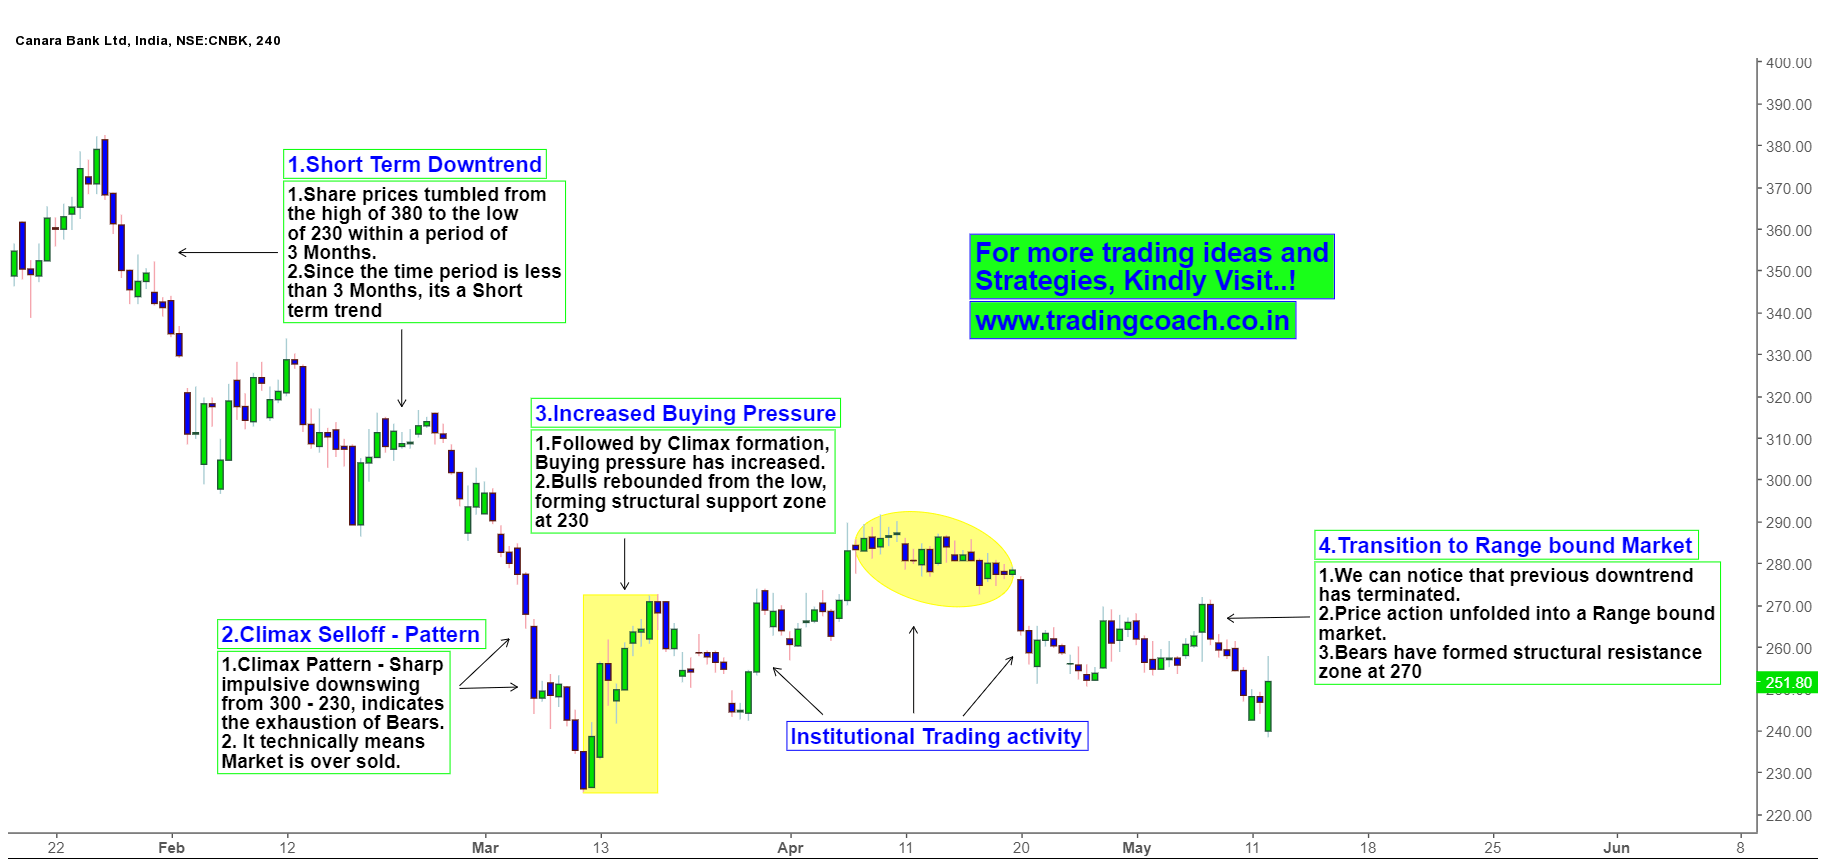 Canara Bank Share prices - Price action changes the structure from trend to range